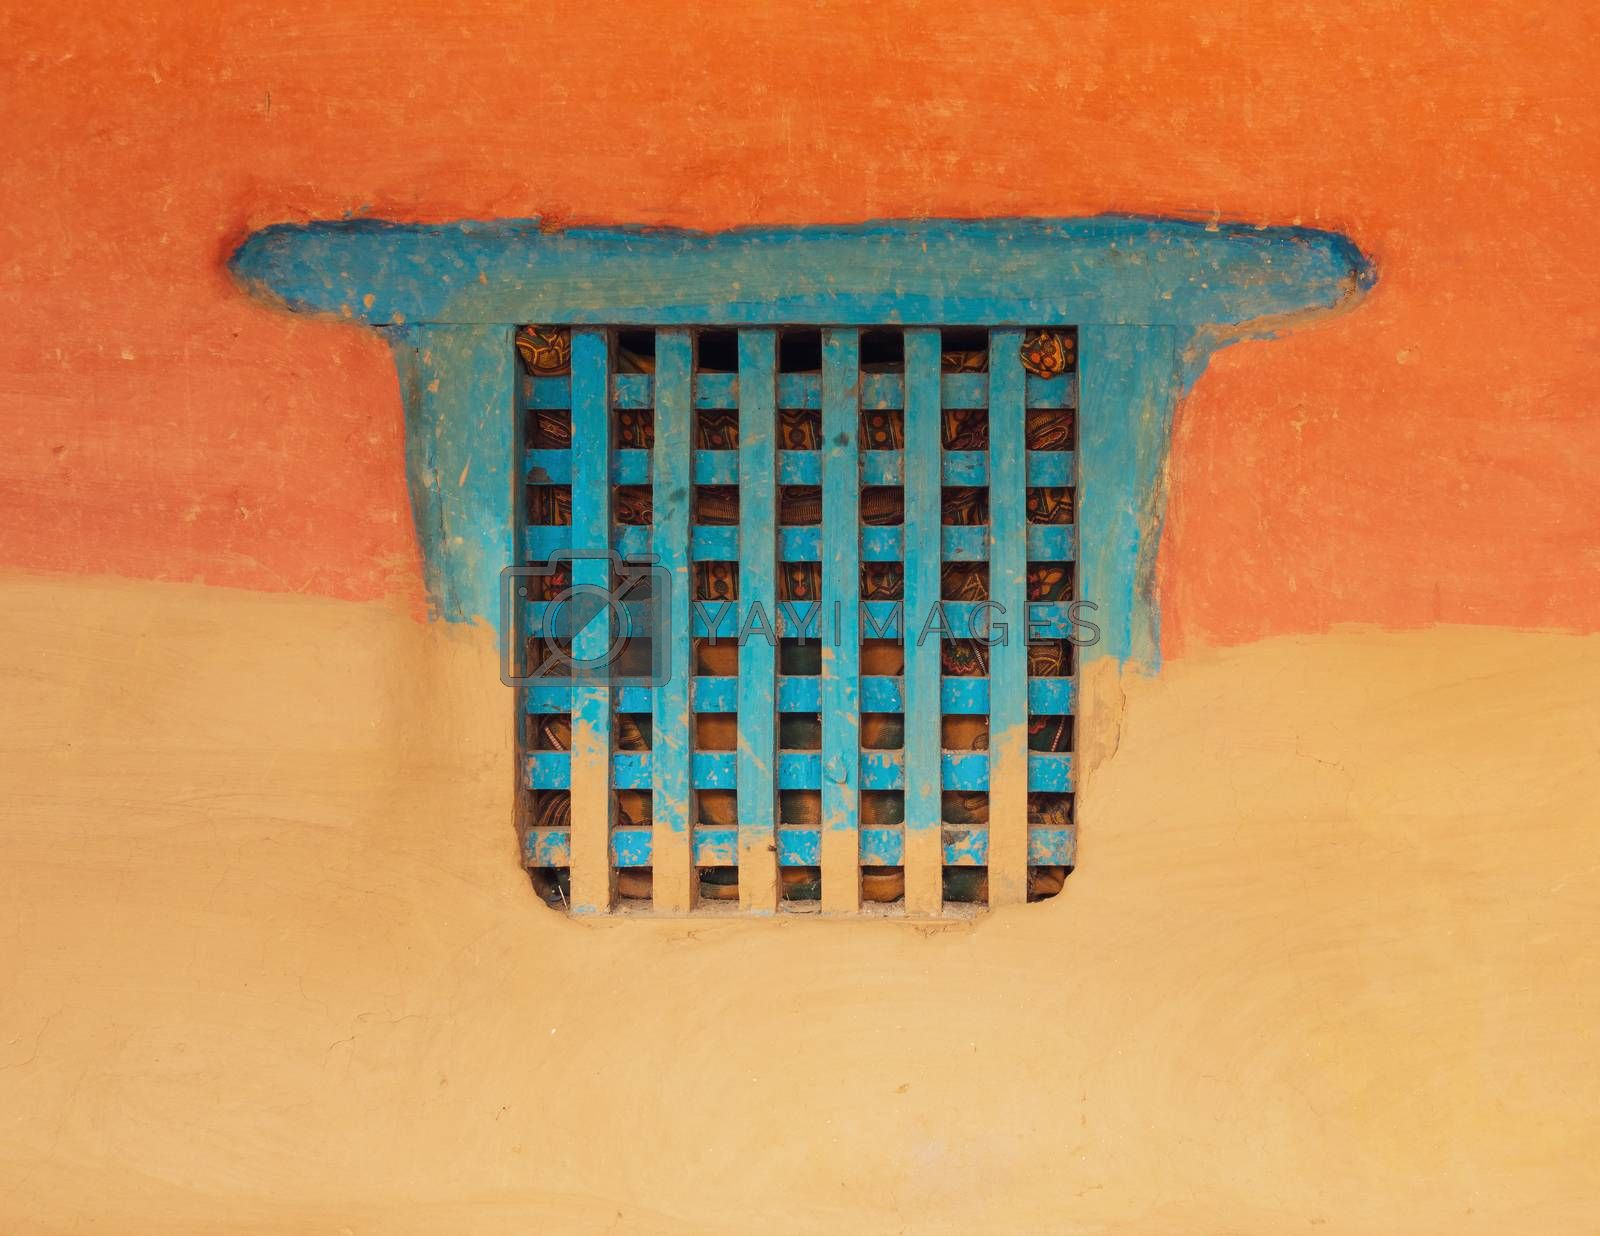 Traditional wooden Nepalese window called Ankhi jhyal. Painted blue on orange and ocher mud wall.